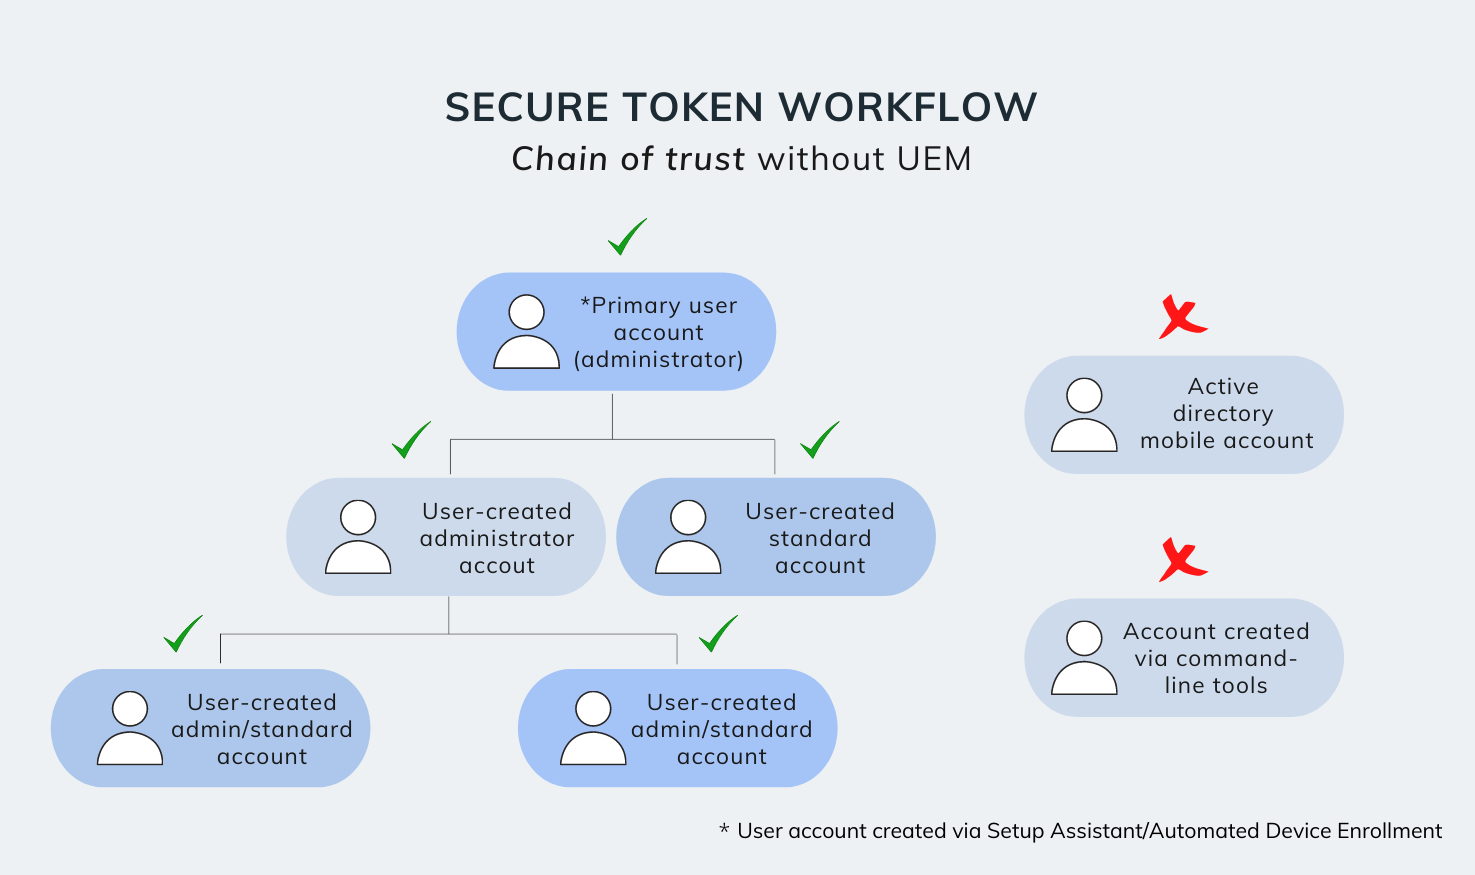 Secure token workflow without UEM